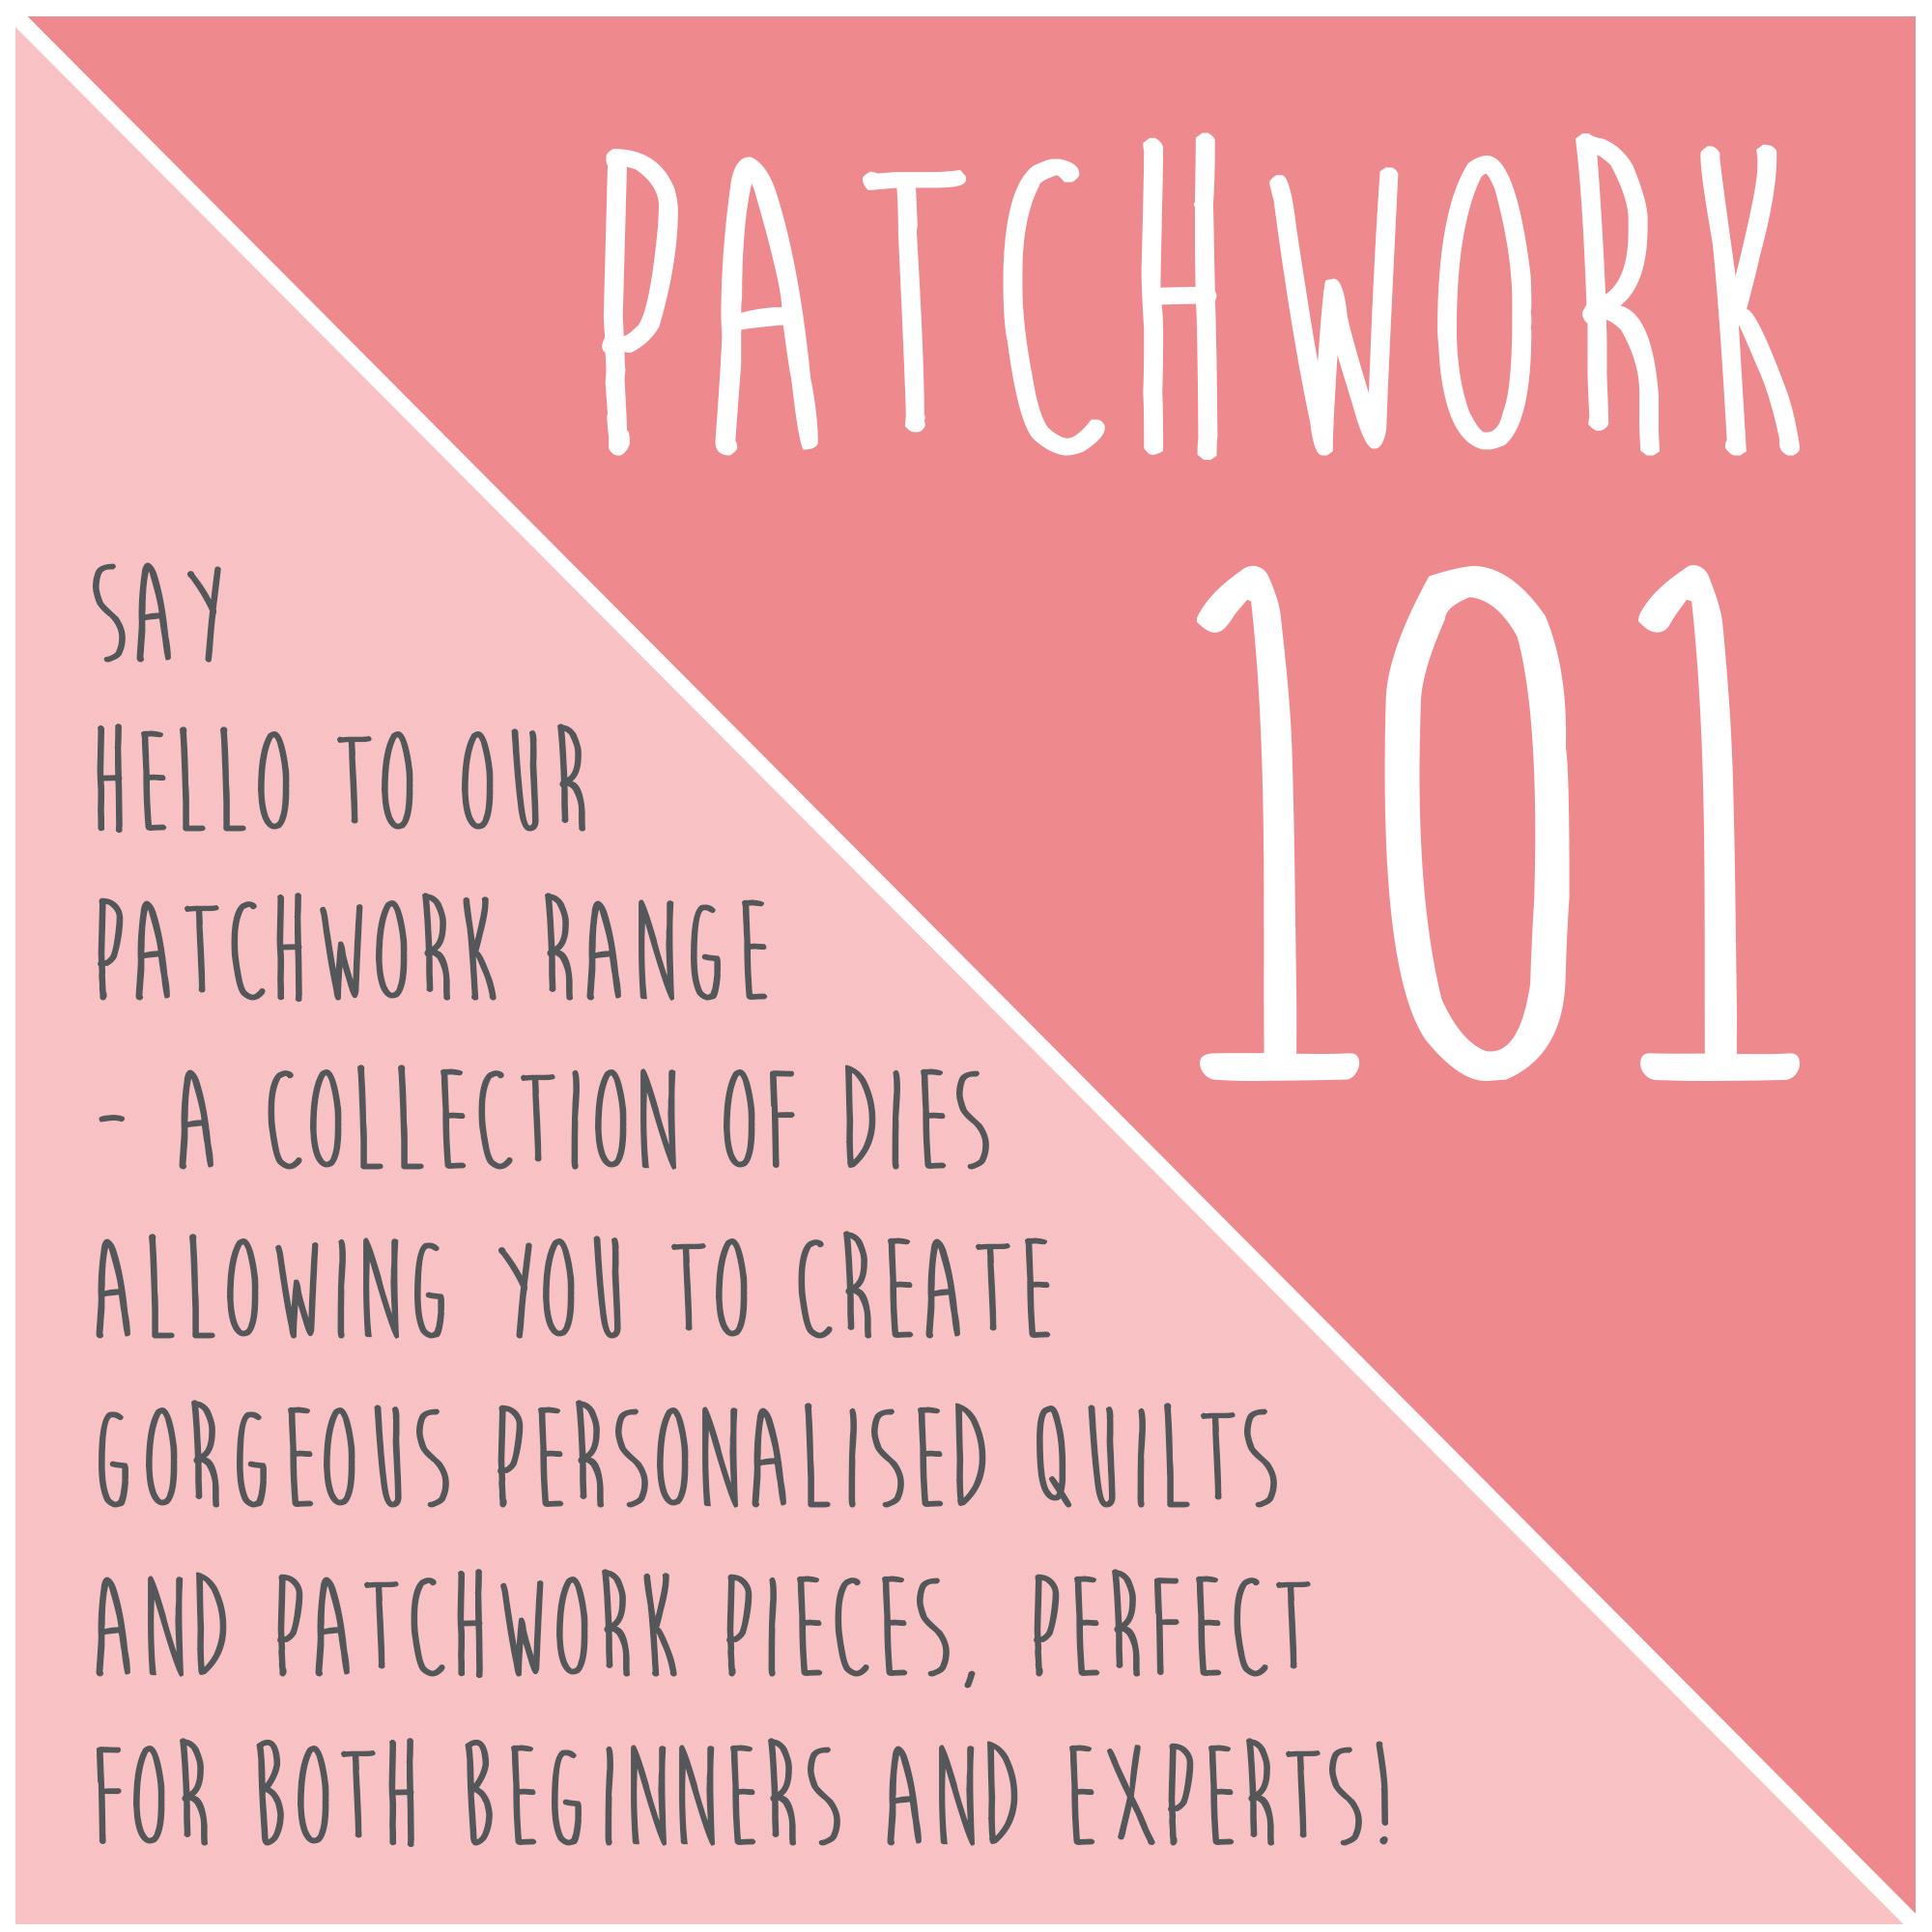 Patchwork 101 - Sizzix Quilting Dies and Inspiration